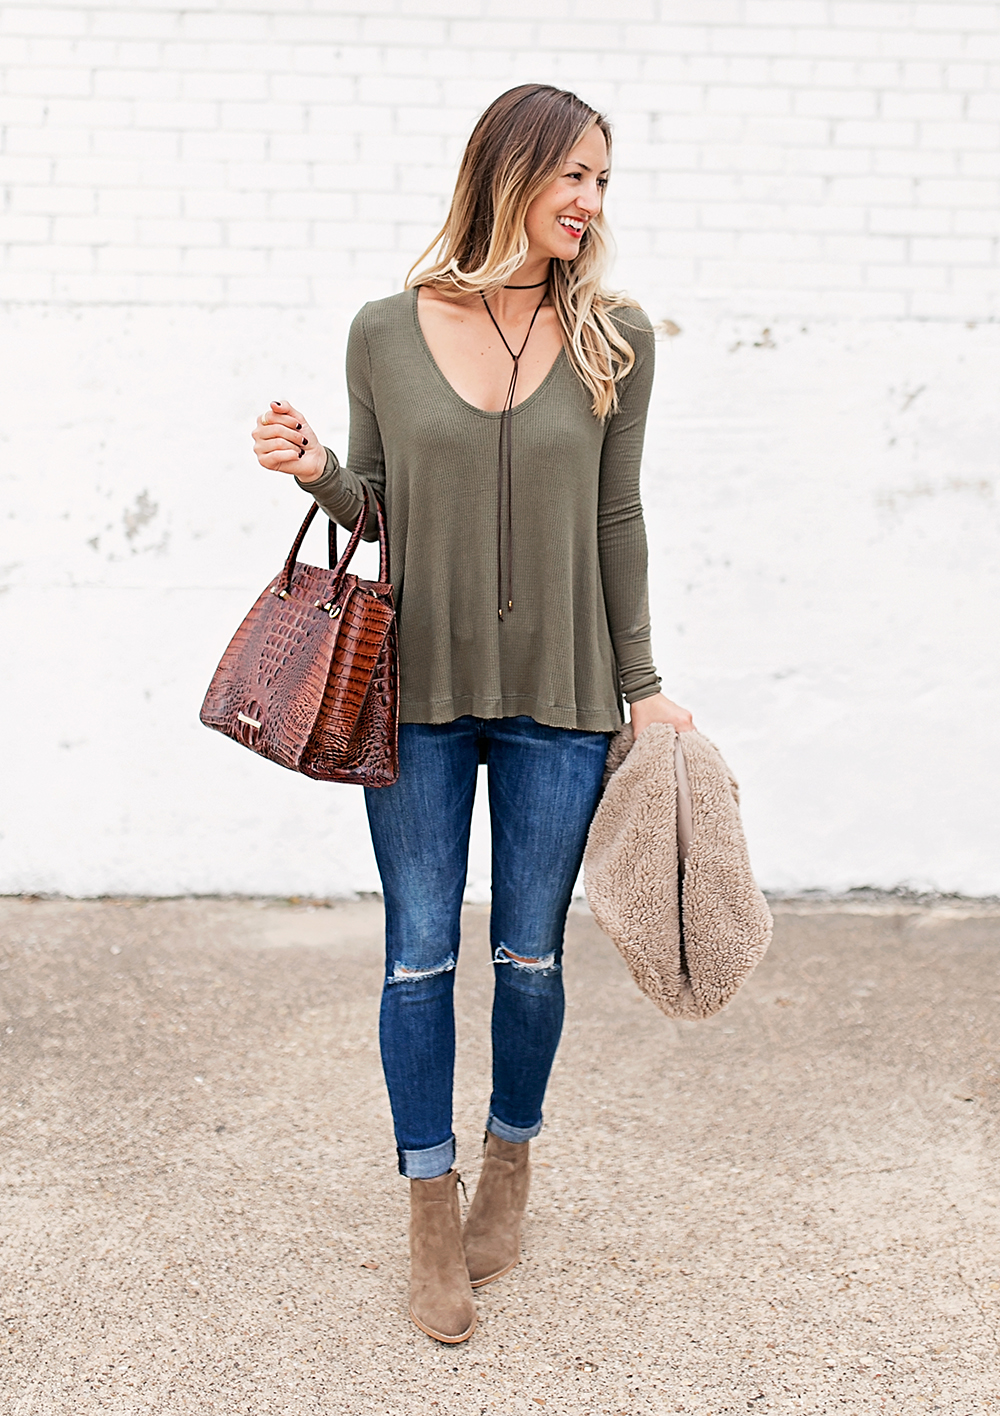 livvyland-blog-olivia-watson-fall-outfit-bb-dakota-sheerling-vest-cozy-fall-outfit-inspiration-ankle-booties-free-people-thermal-top-5